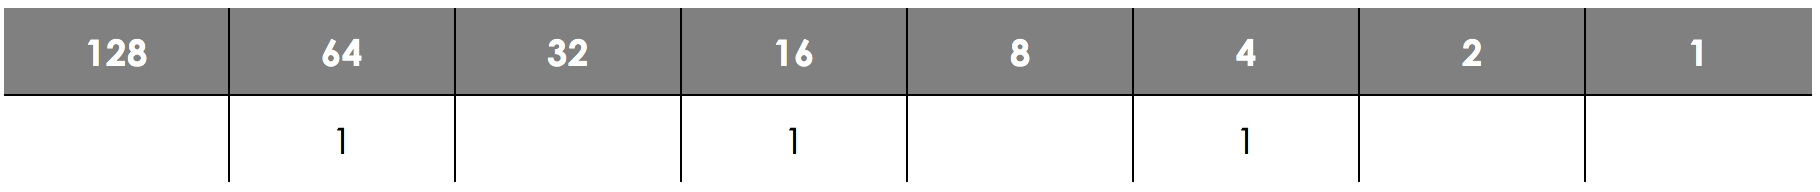 Number Bases - Binary, figure 3